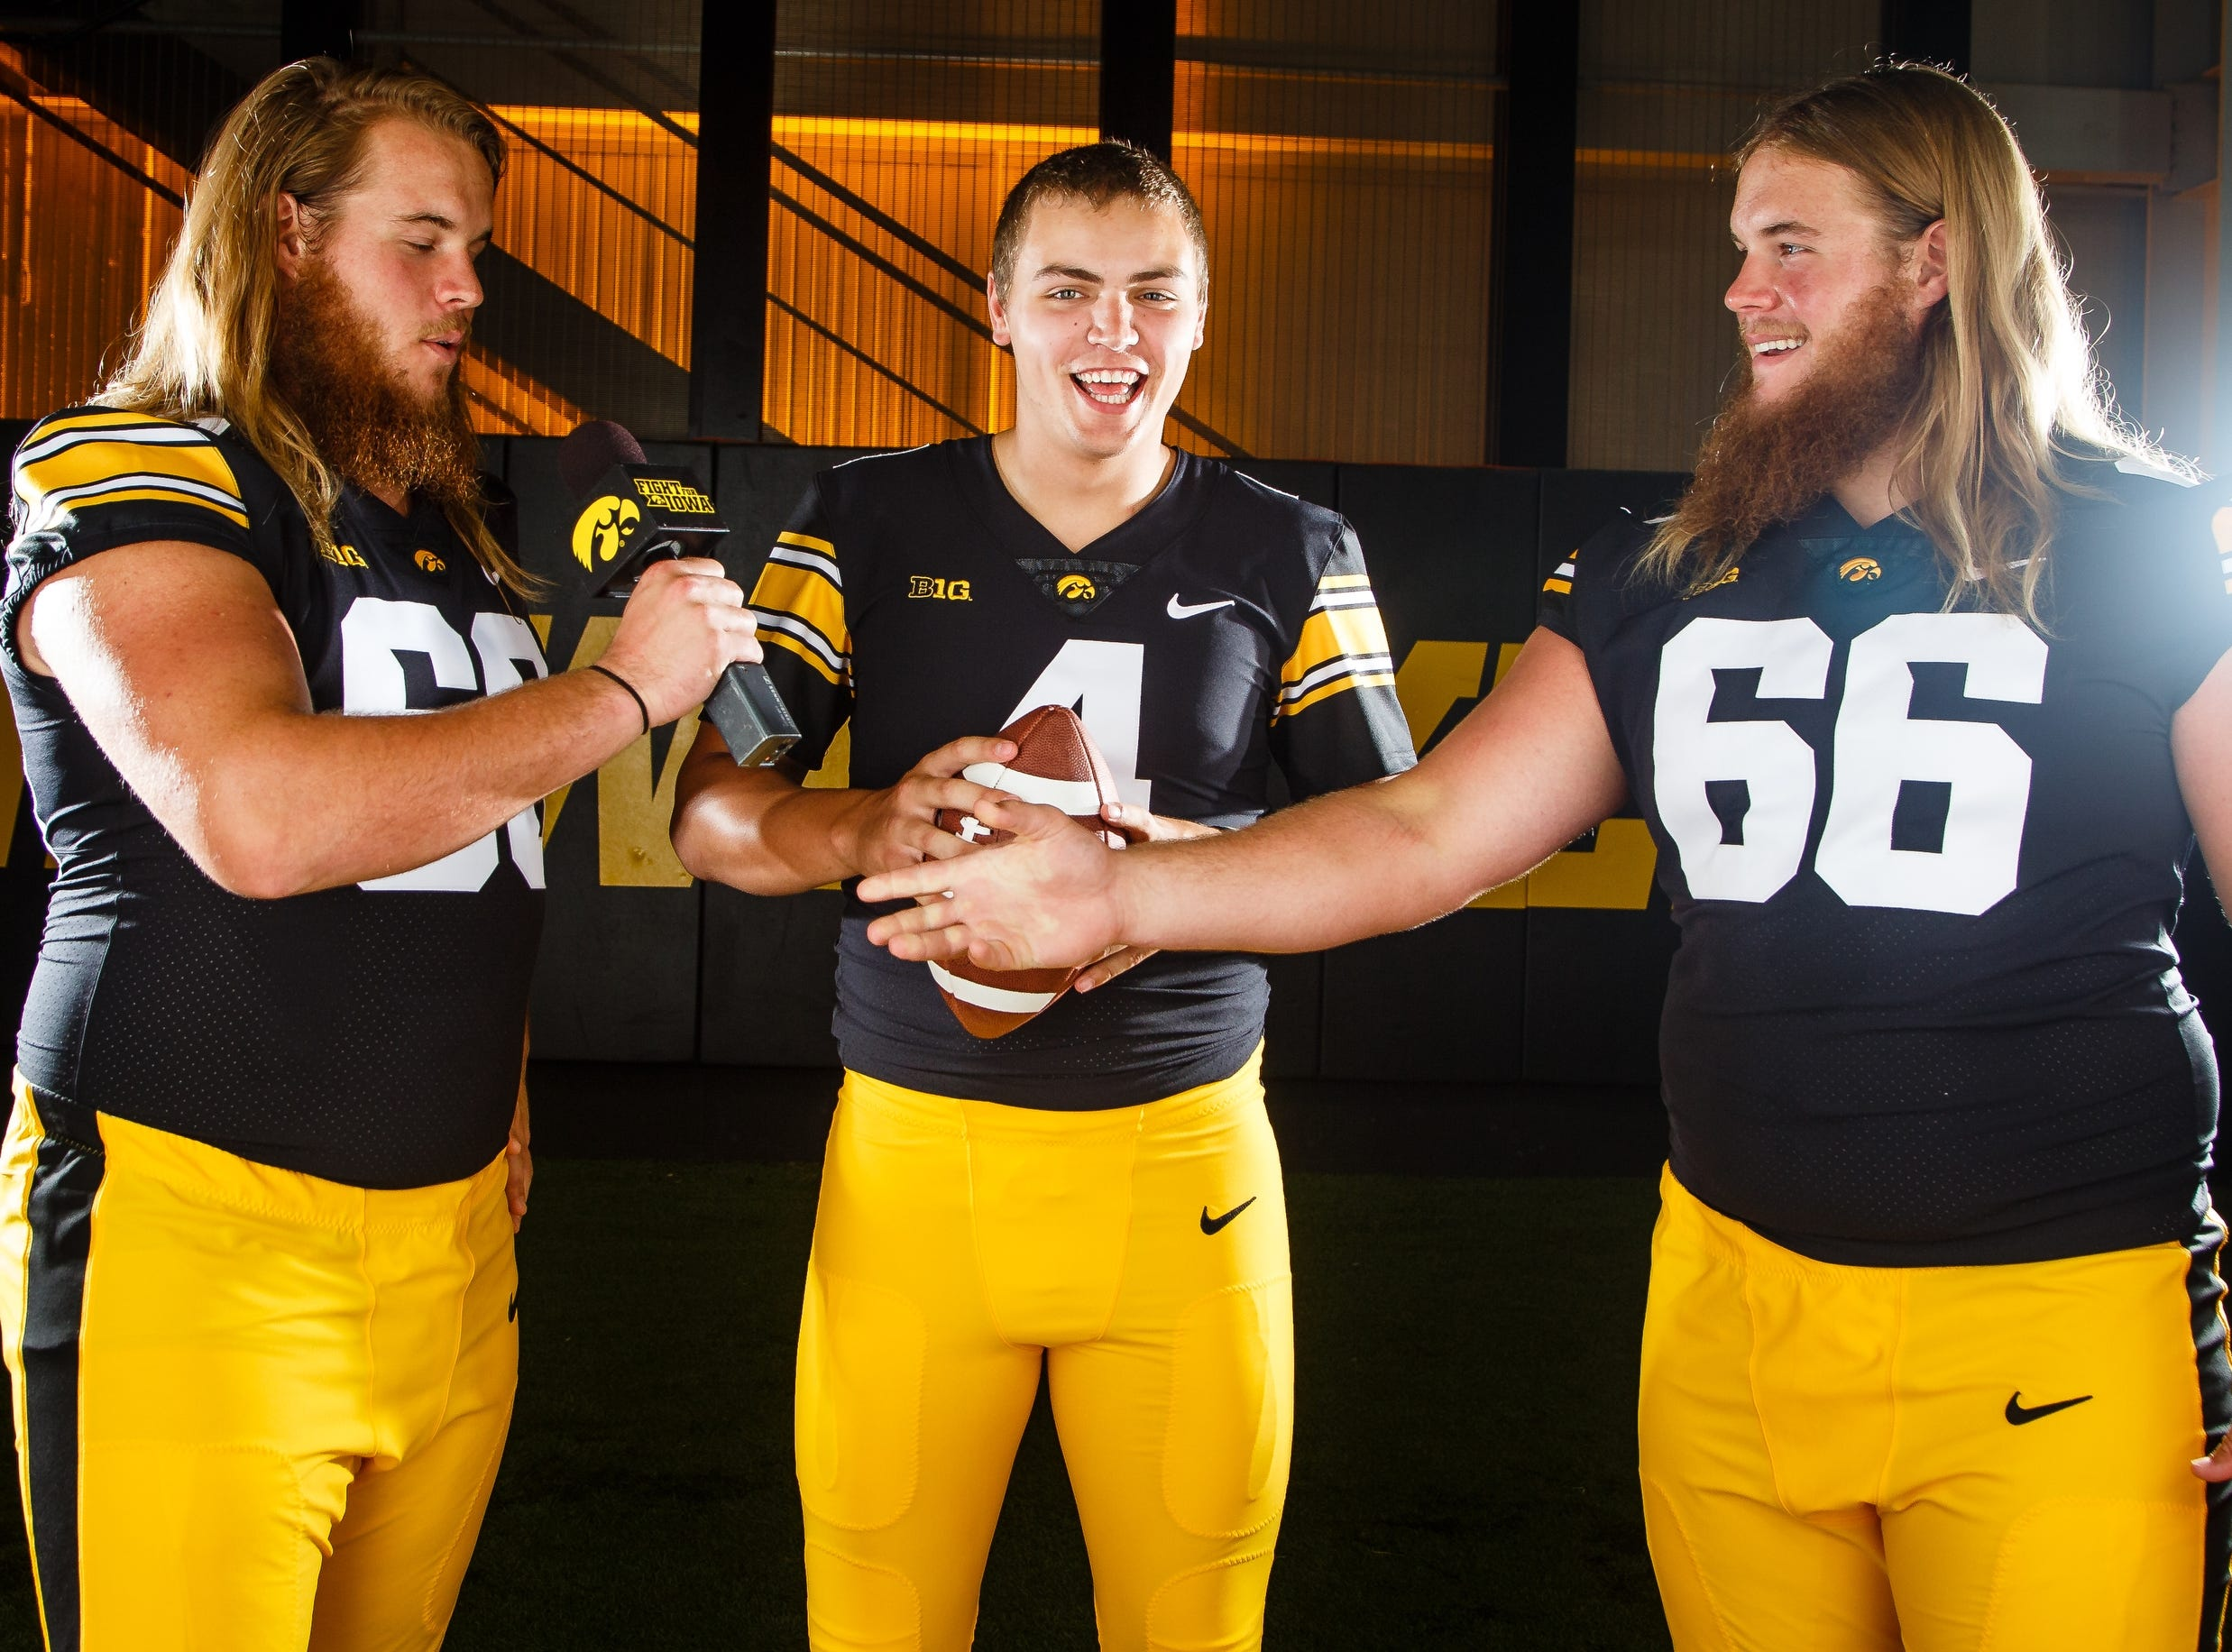 Iowa's Landan Paulsen, left, Nate Stanely, center, and Levi Paulsen, right, joke around during the Iowa Football media day on Friday, Aug. 10, 2018 in Iowa City.